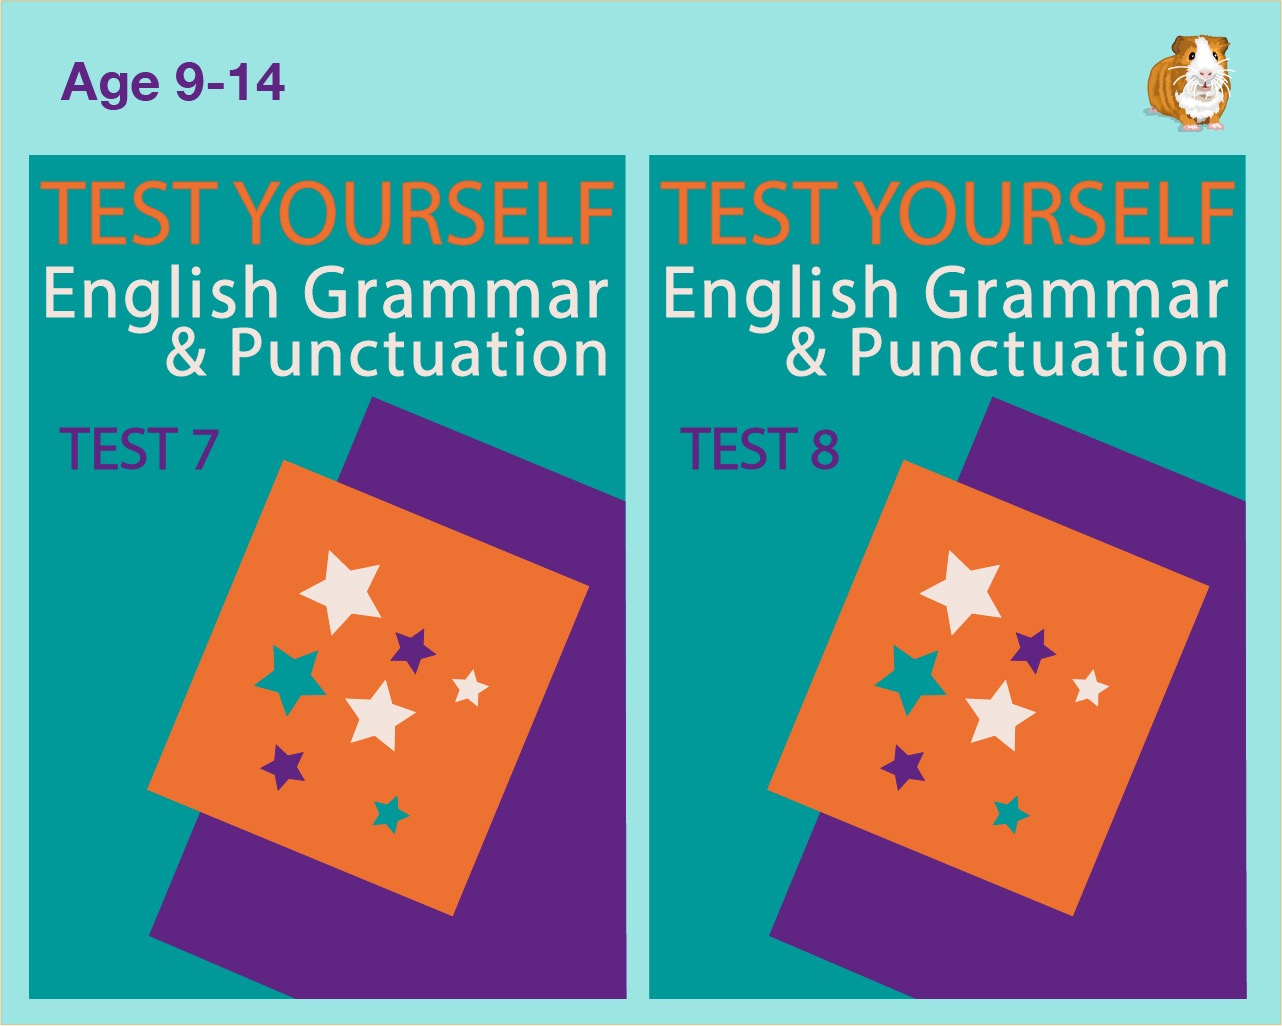 Assessment Test 7 & 8 (Test Your English Grammar And Punctuation Skills) 9-14 years